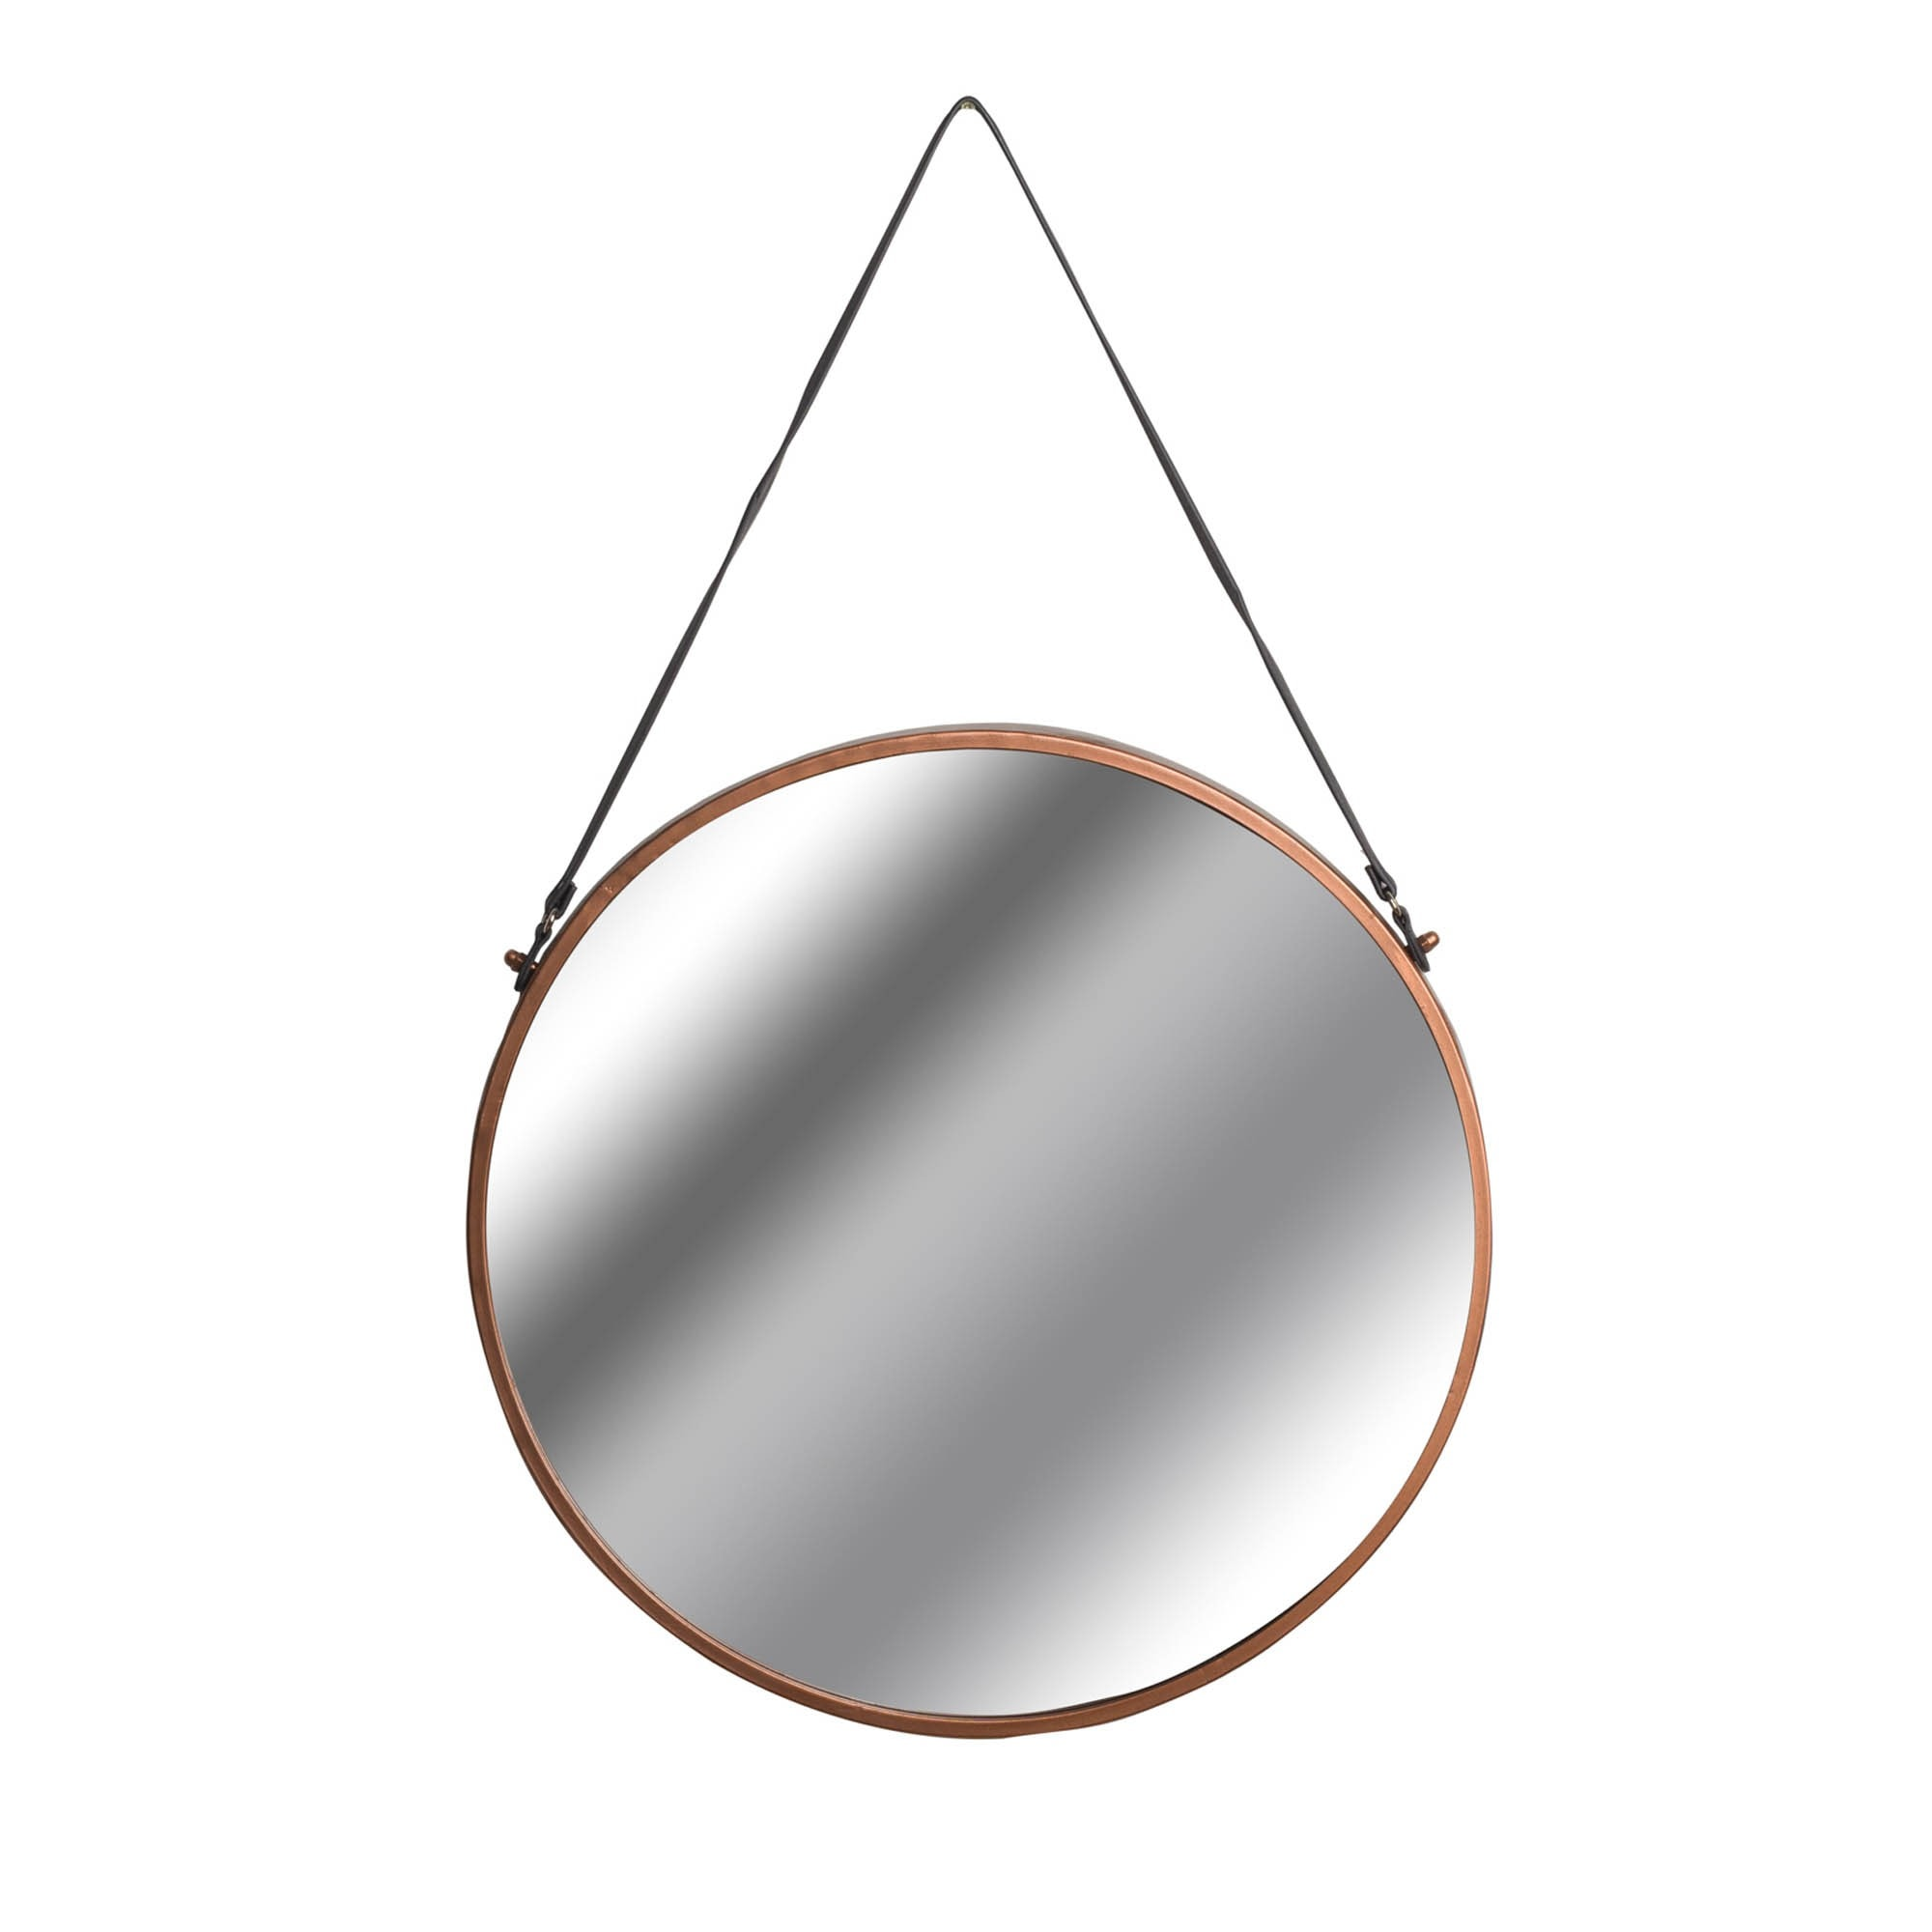 Copper Rimmed Round Hanging Wall Mirror With Black Strap Round Mirrors